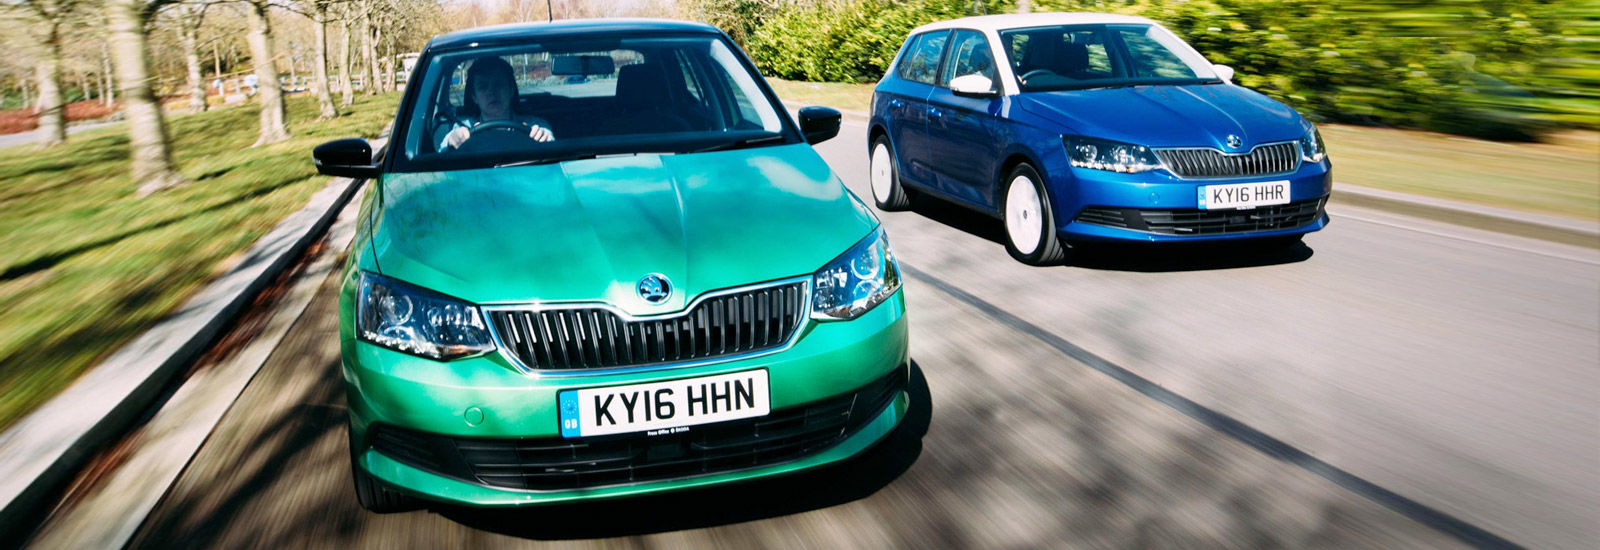 Car paint colour - Fabia Colours Guides To Check Out What Other Shades Are On Offer Or Check Out Our Car Paint Types Guide For An In Depth Look At The Variety Of Modern